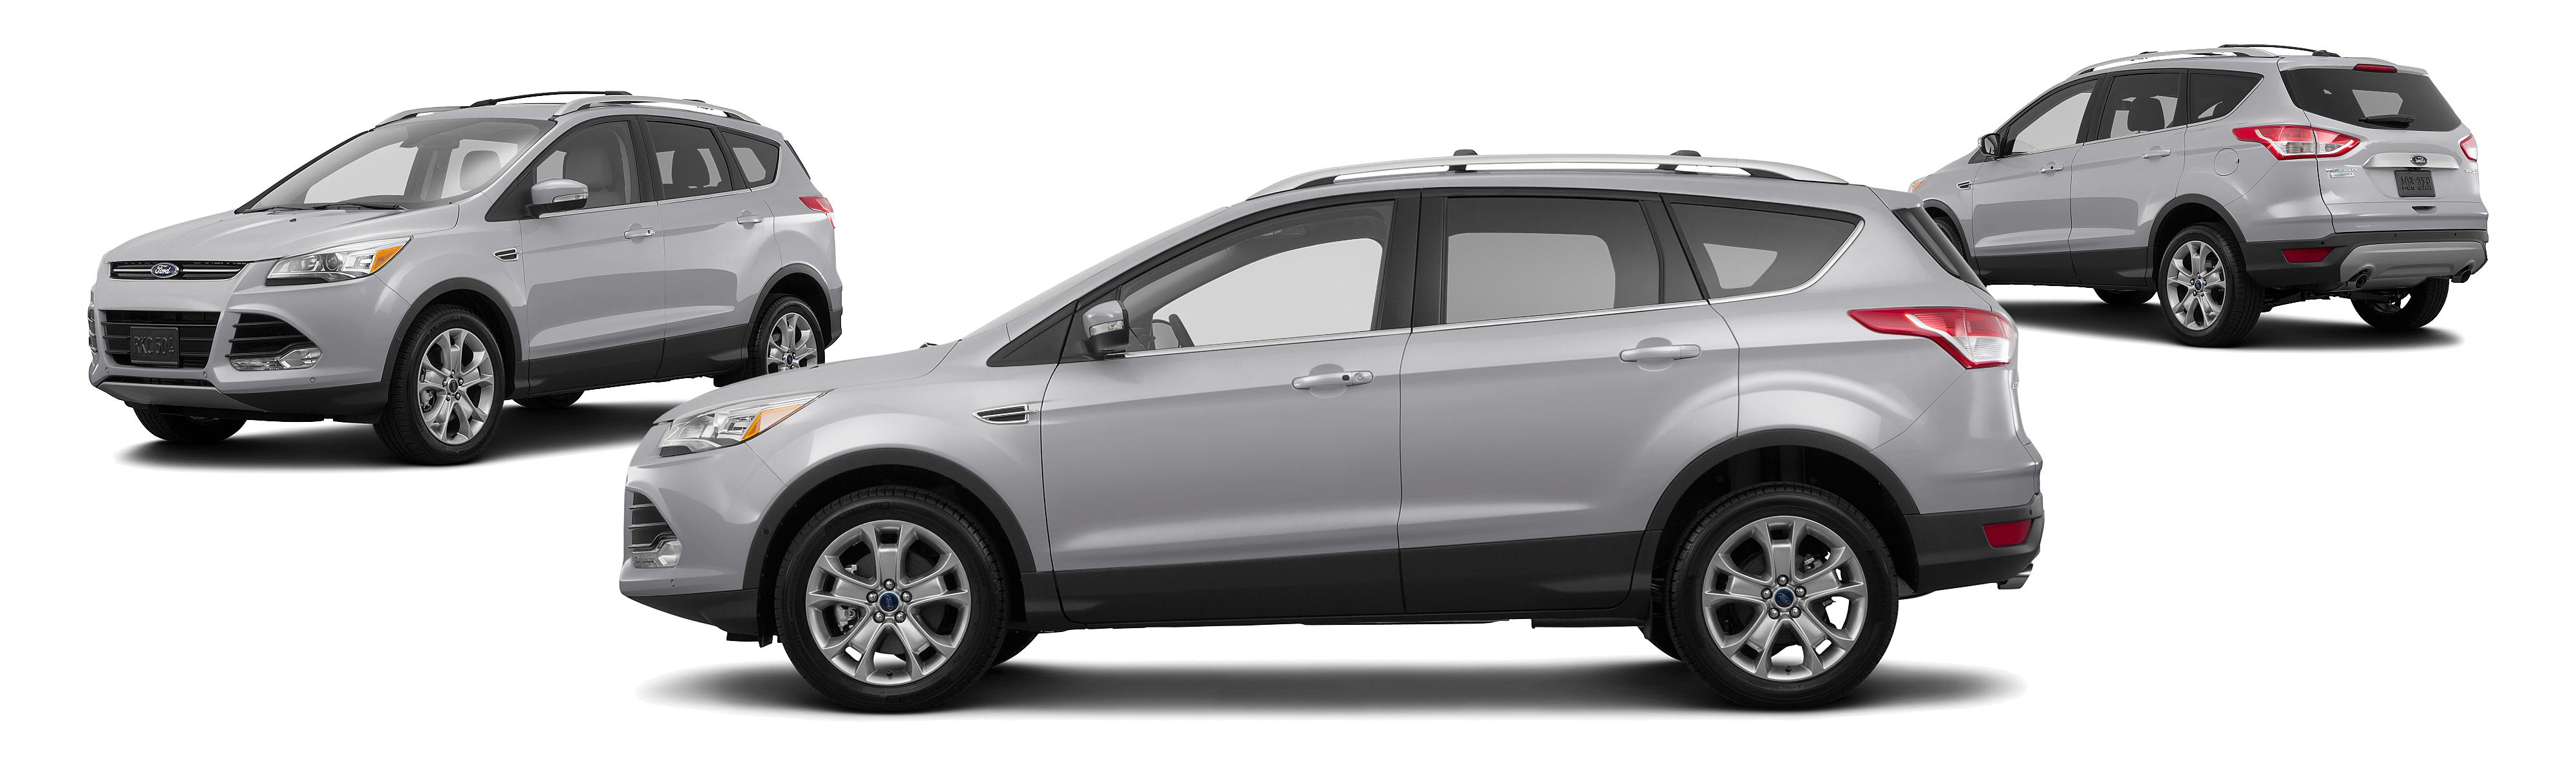 expedition pre sale htm featured suv in ford vehicles f ky for livermore owned inc platinum b evans